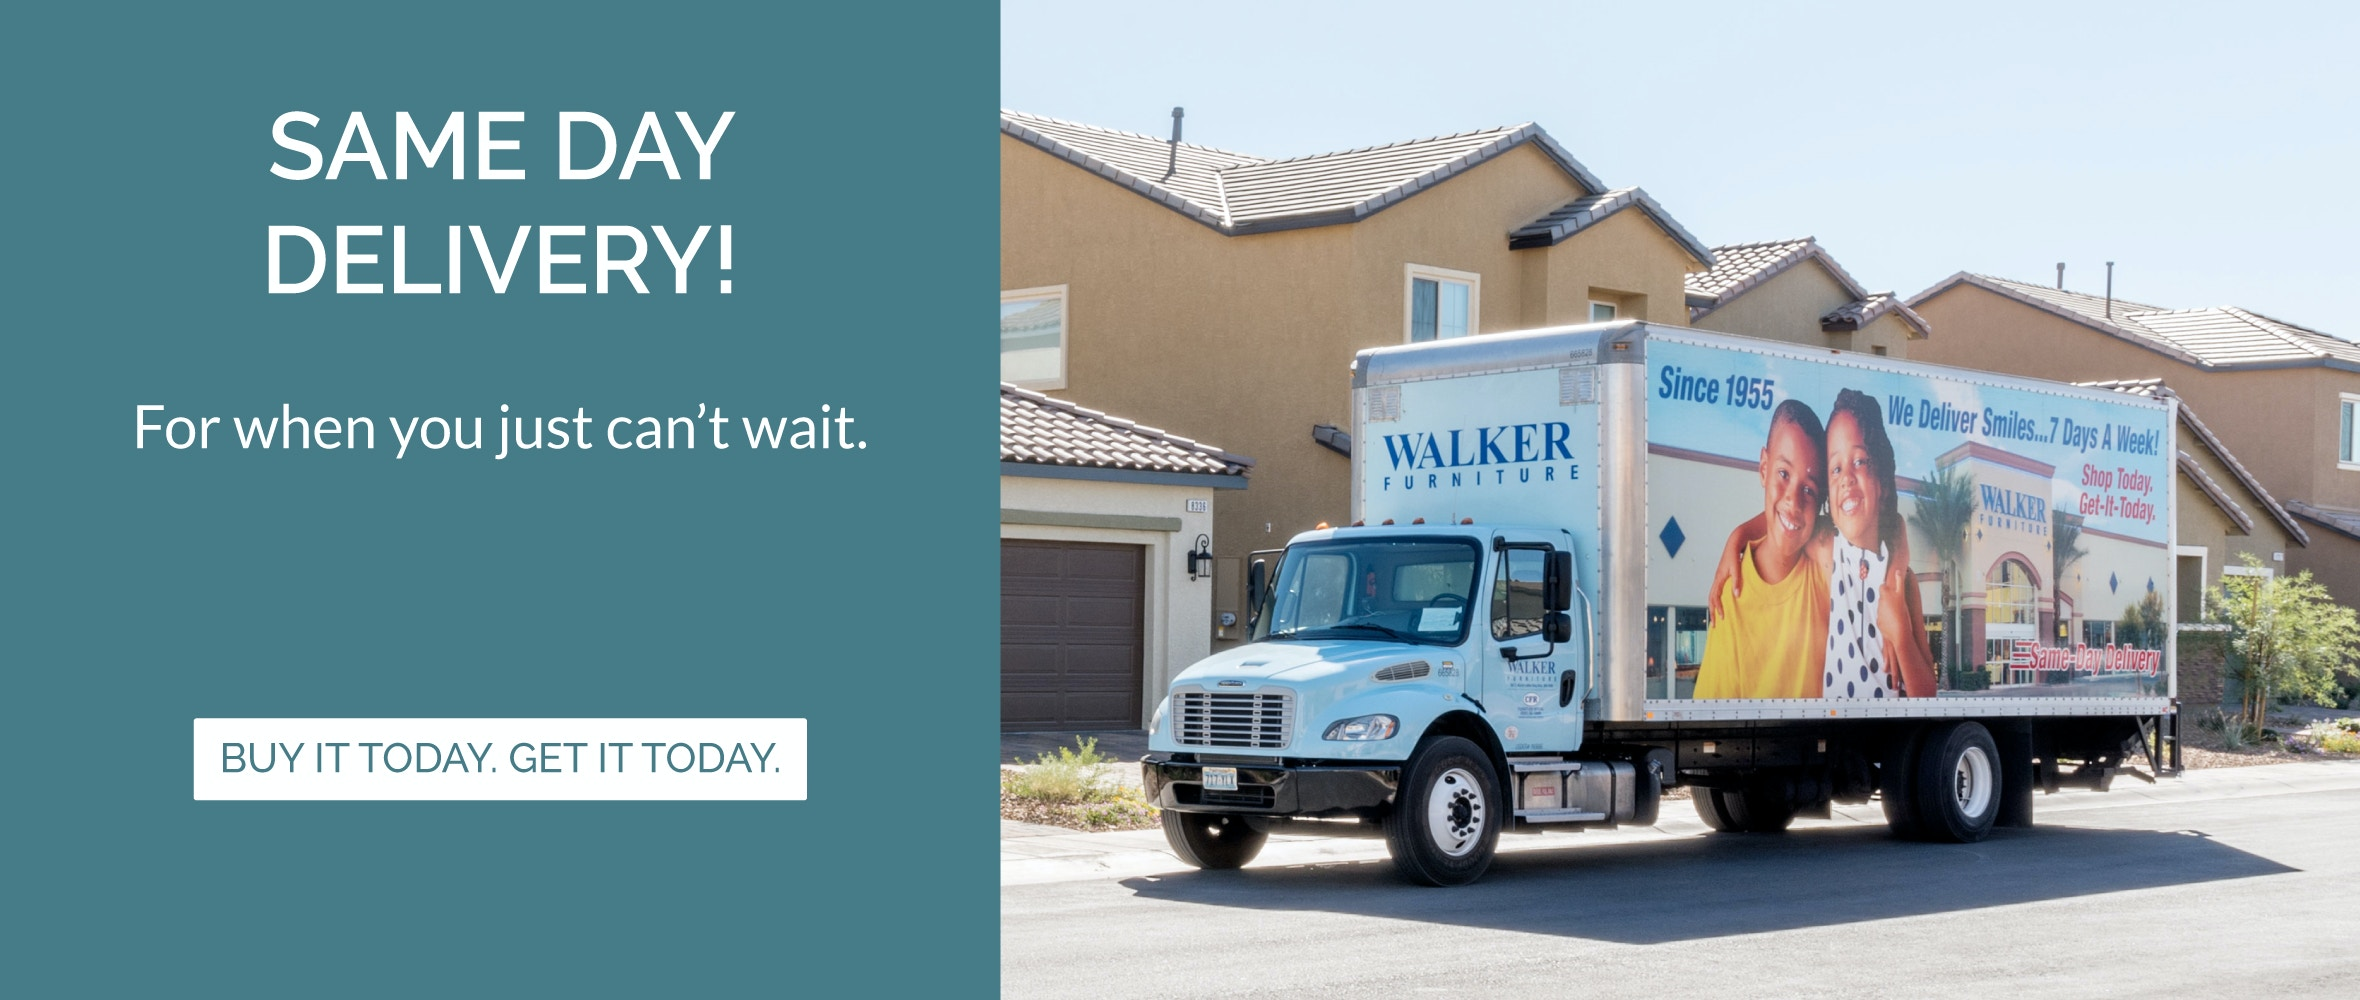 Amazing Same Day Delivery From Walker Furniture!